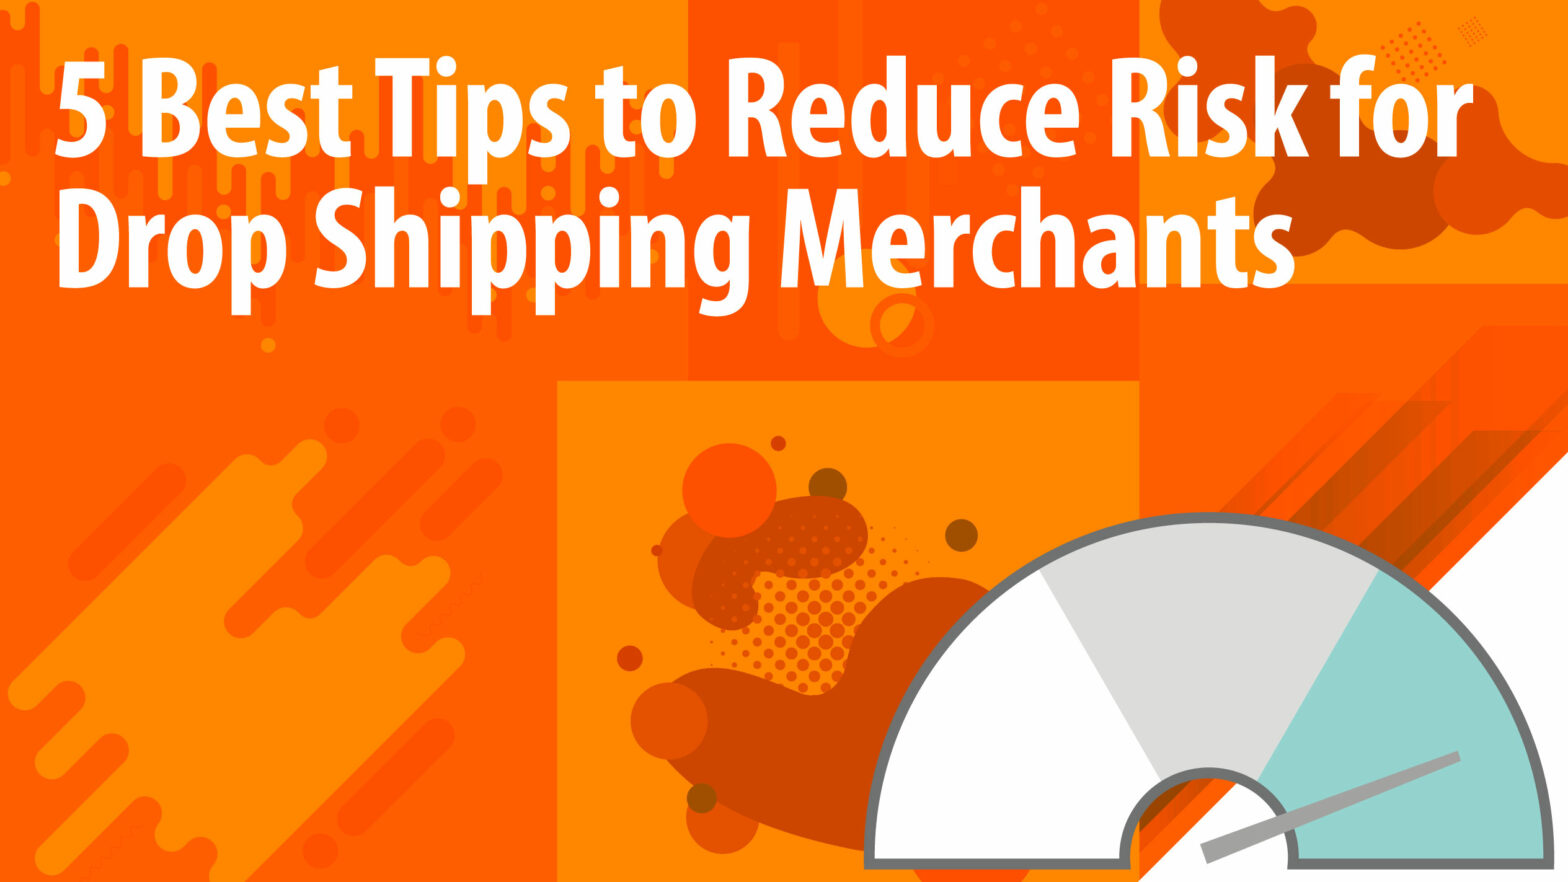 Drop Shipping Reduce Risk Article Header